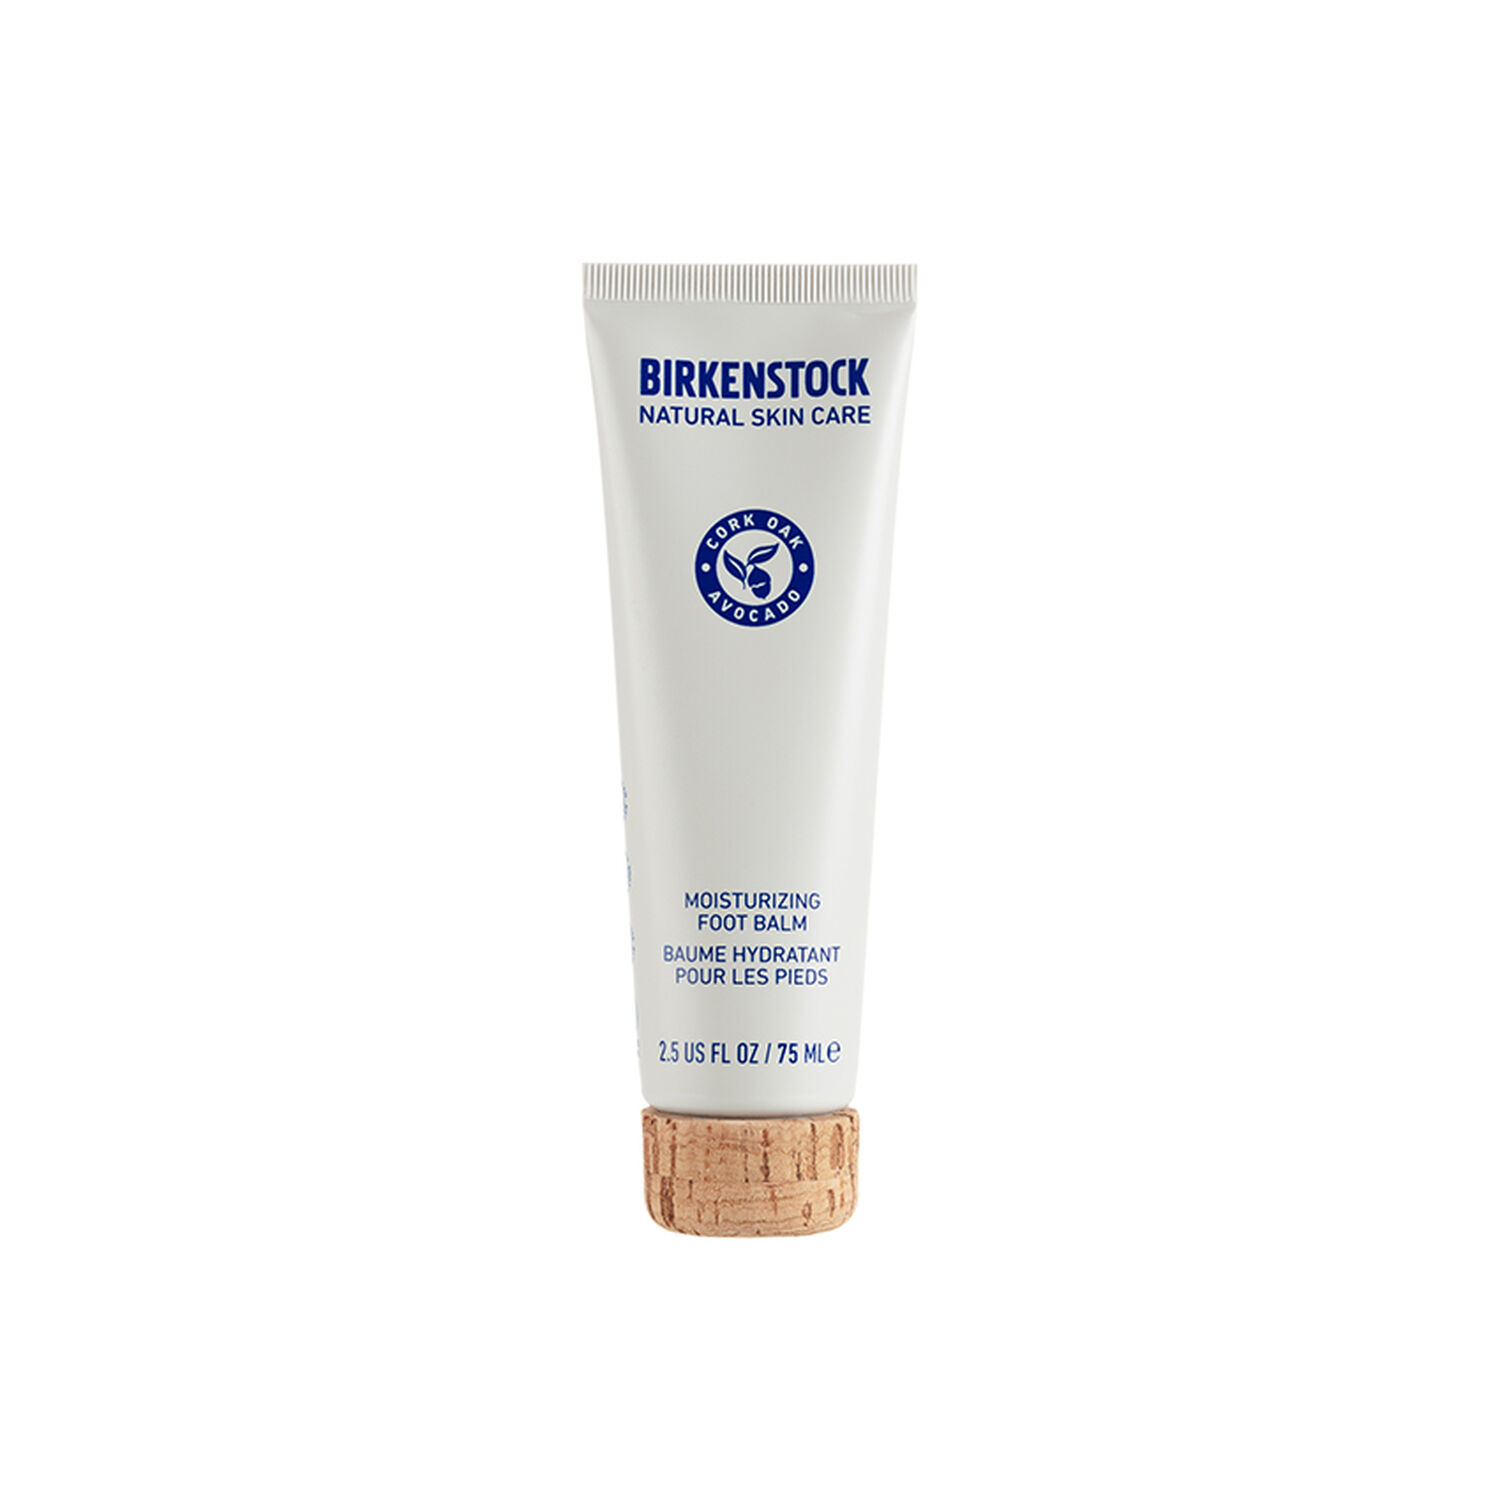 Moisturizing Foot Balm